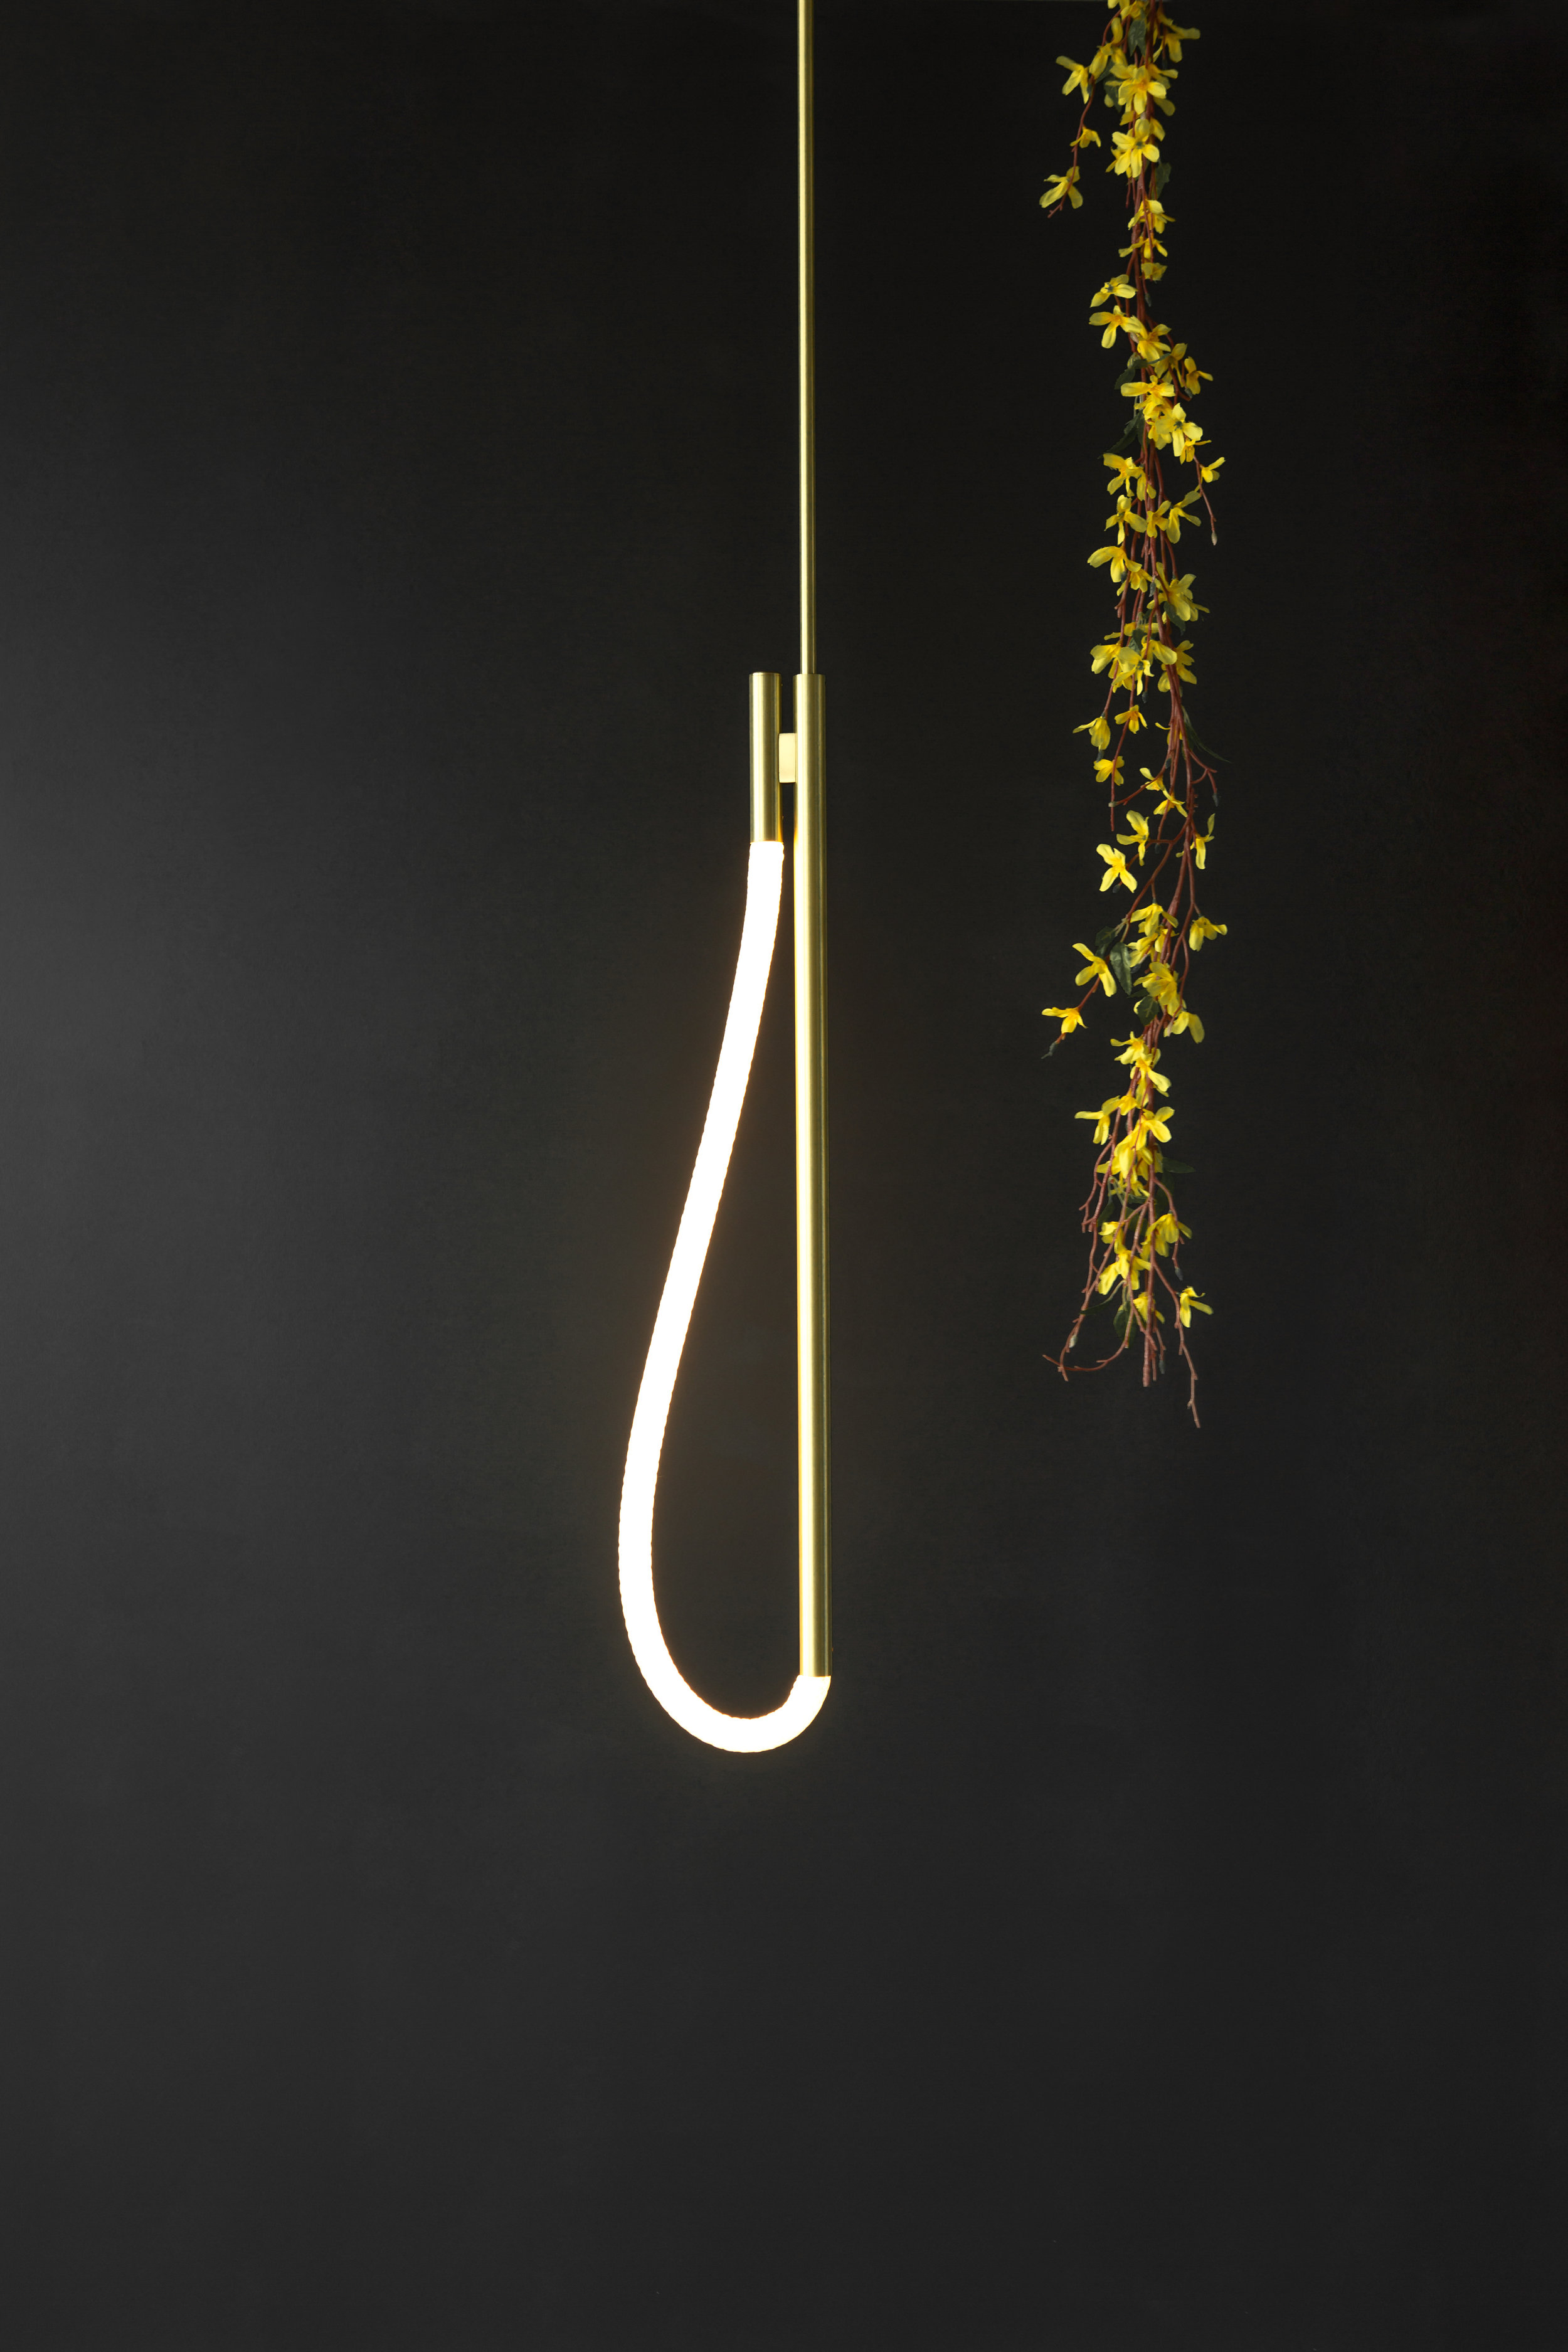 As pictured: 2.5' Artemis Pendant in Satin Brass